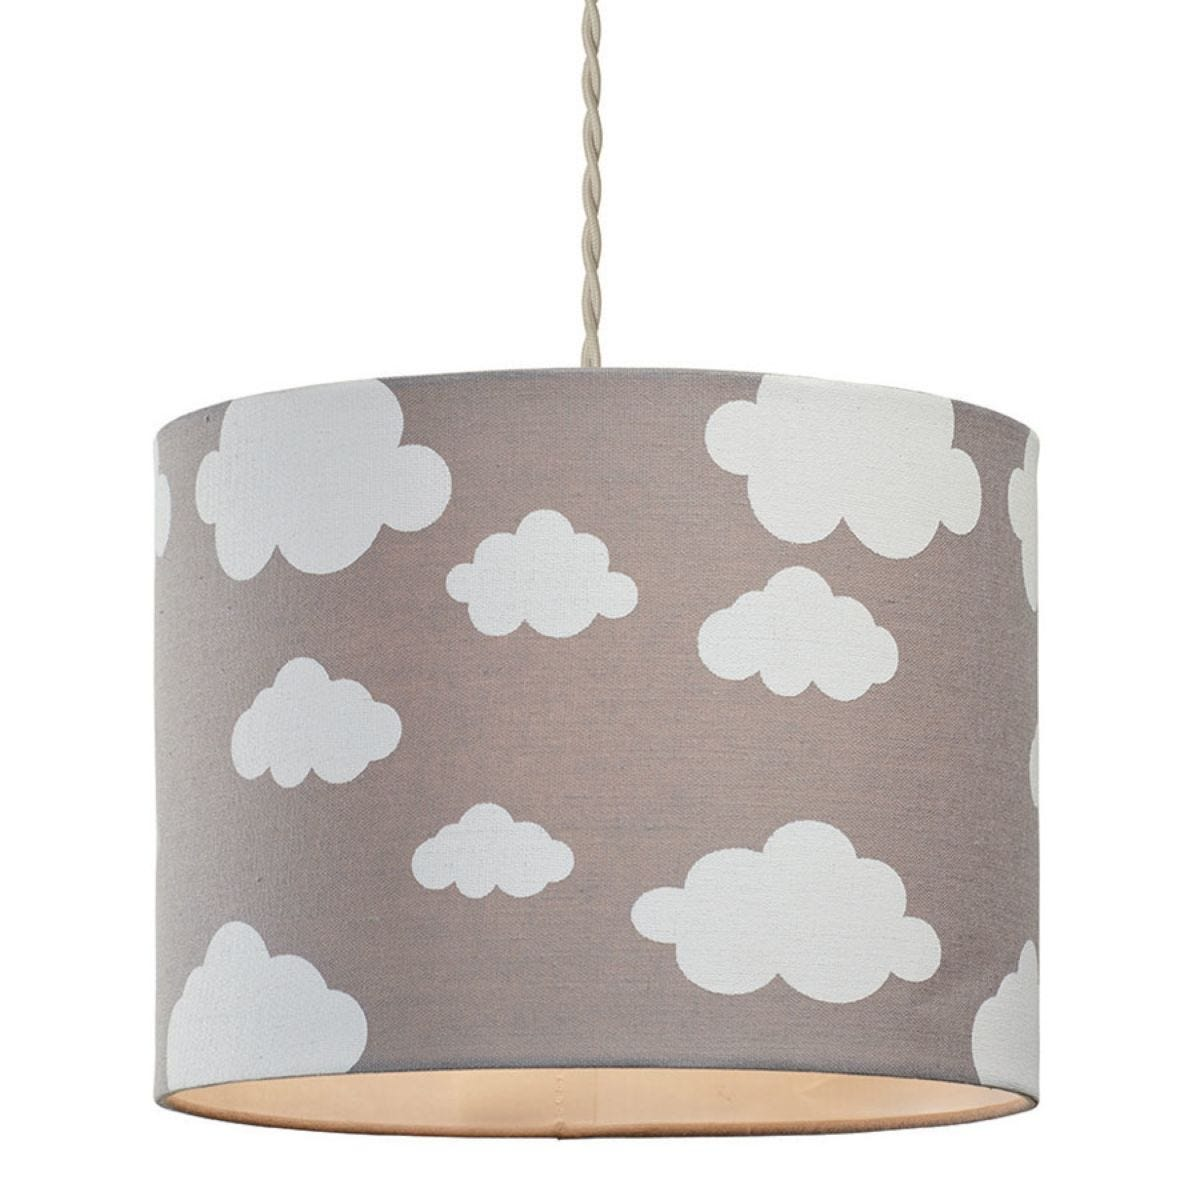 Village At Home Cloudy Day Light Shade - Taupe